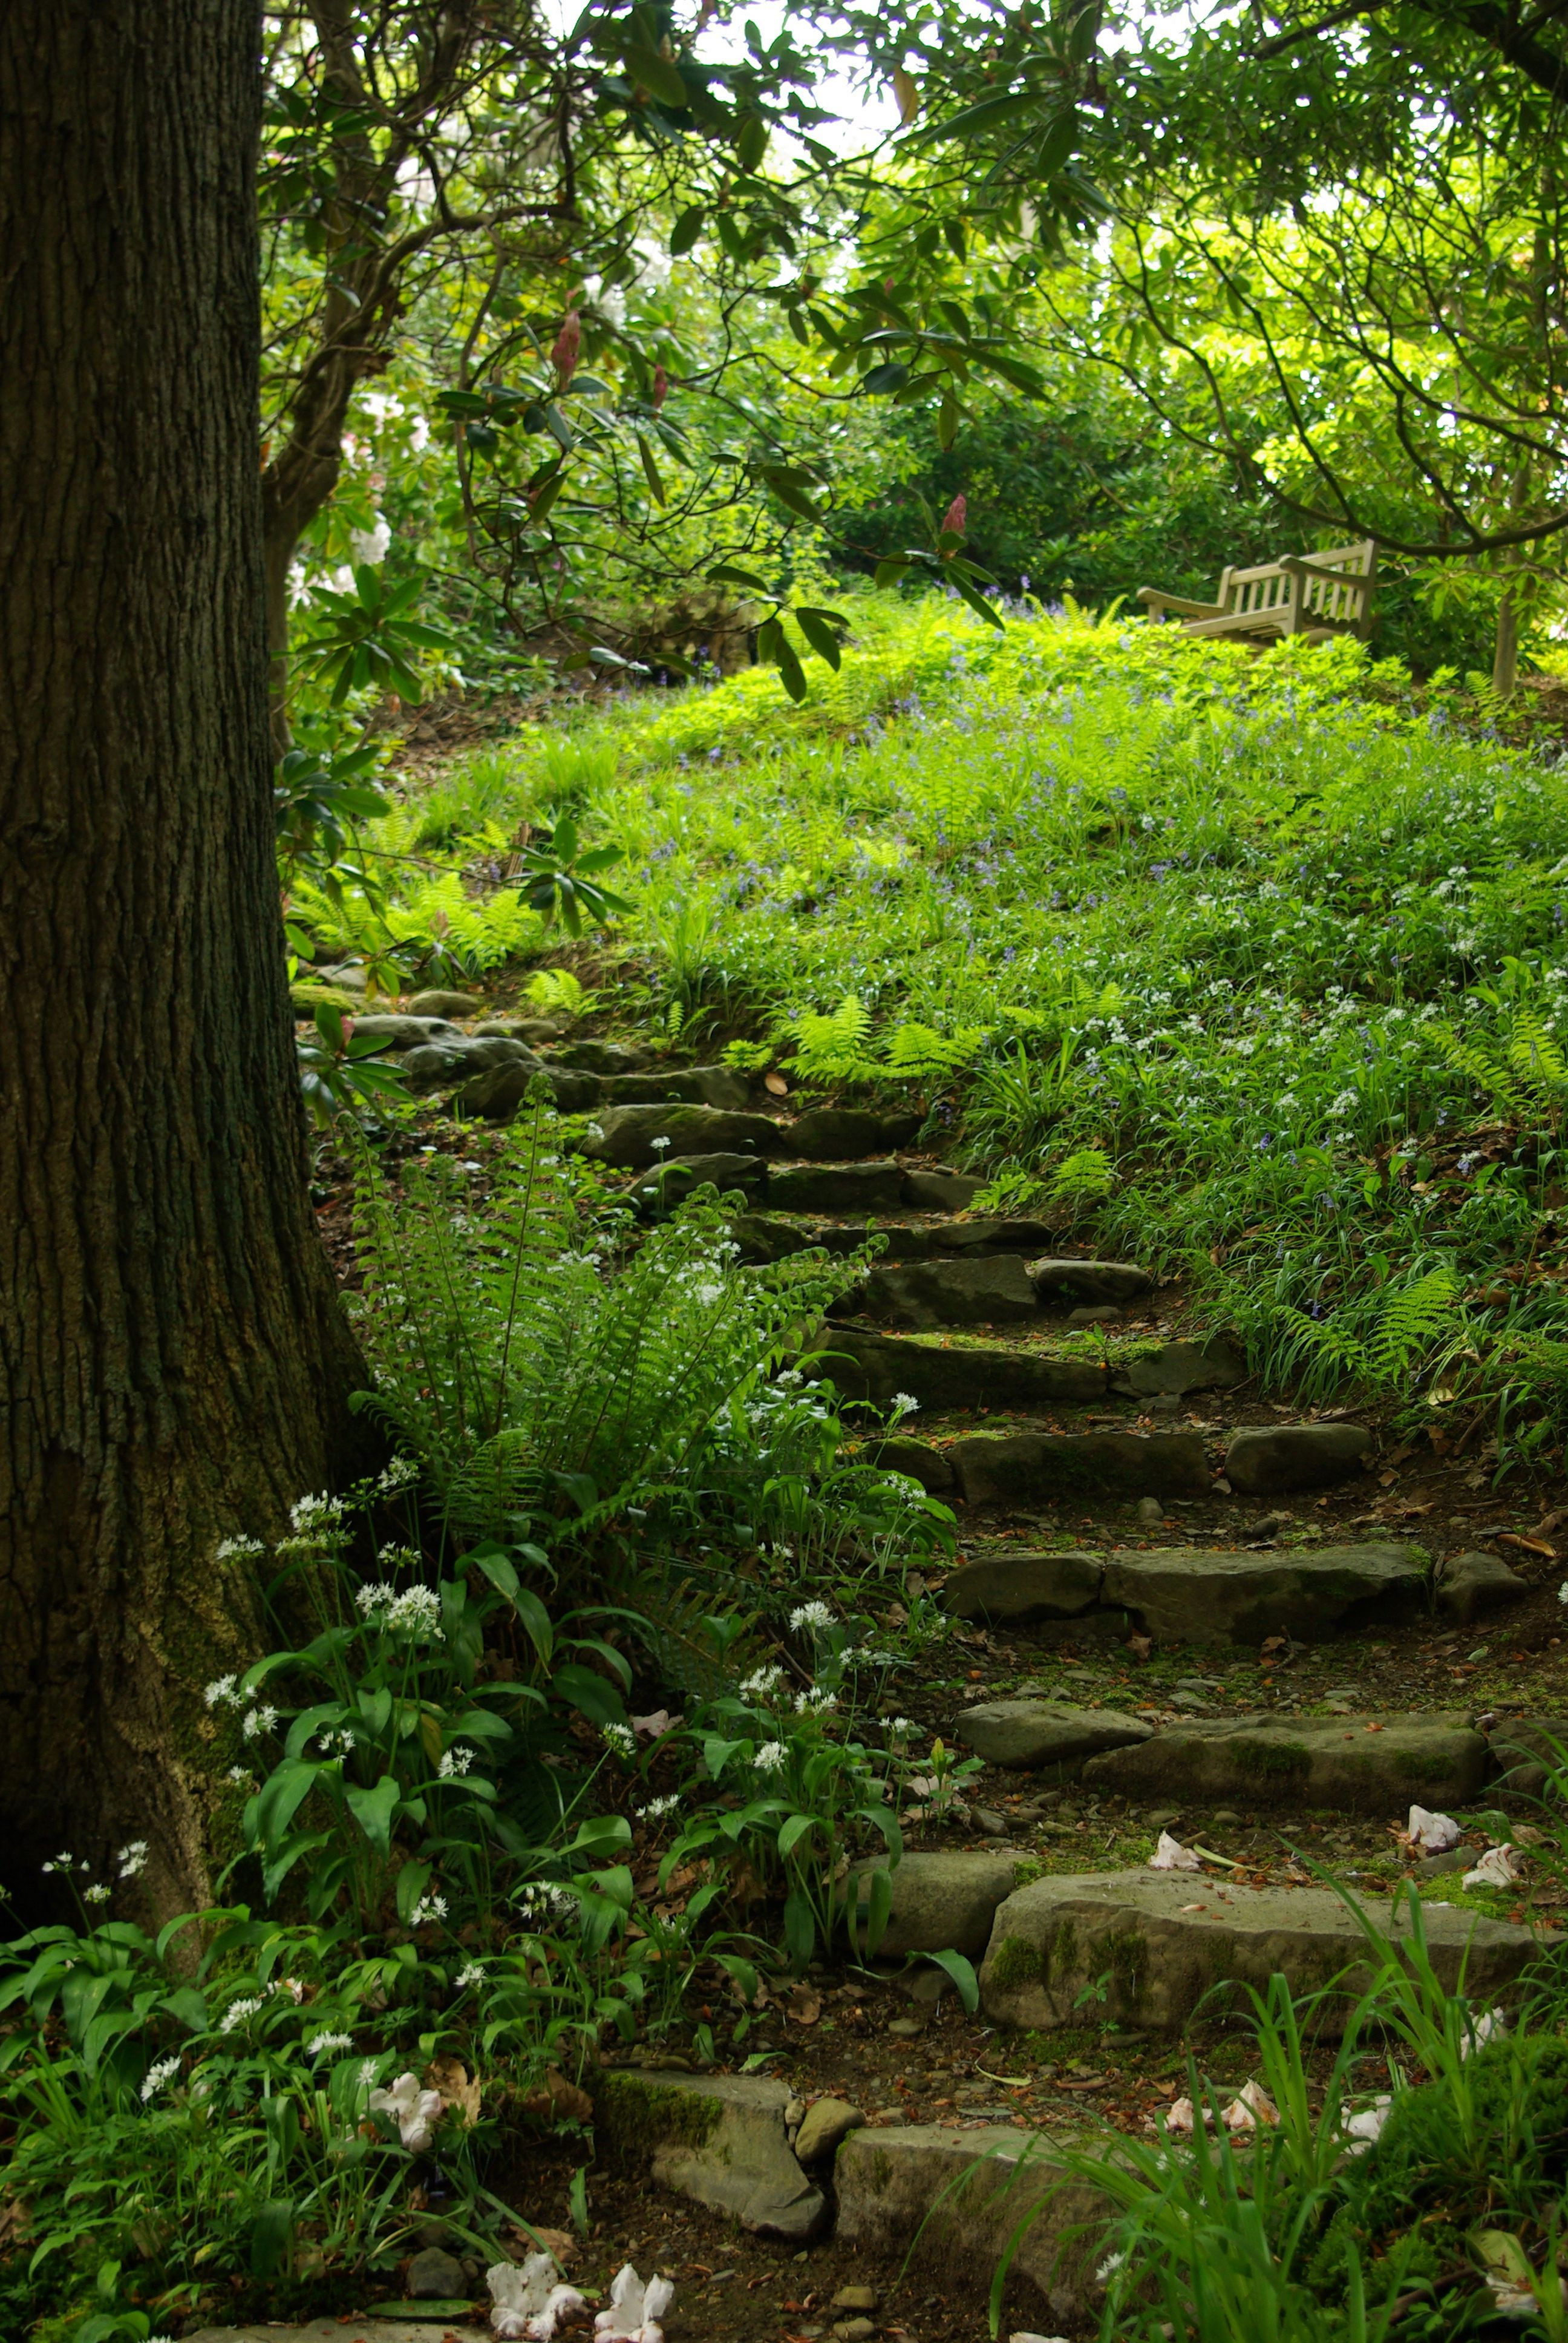 Affordable Beautiful Garden Path For Your Garden 40 https://freshouz.com/50-affordable-garden-path-design-for-your-amazing-garden/affordable-beautiful-garden-path-for-your-garden-40/